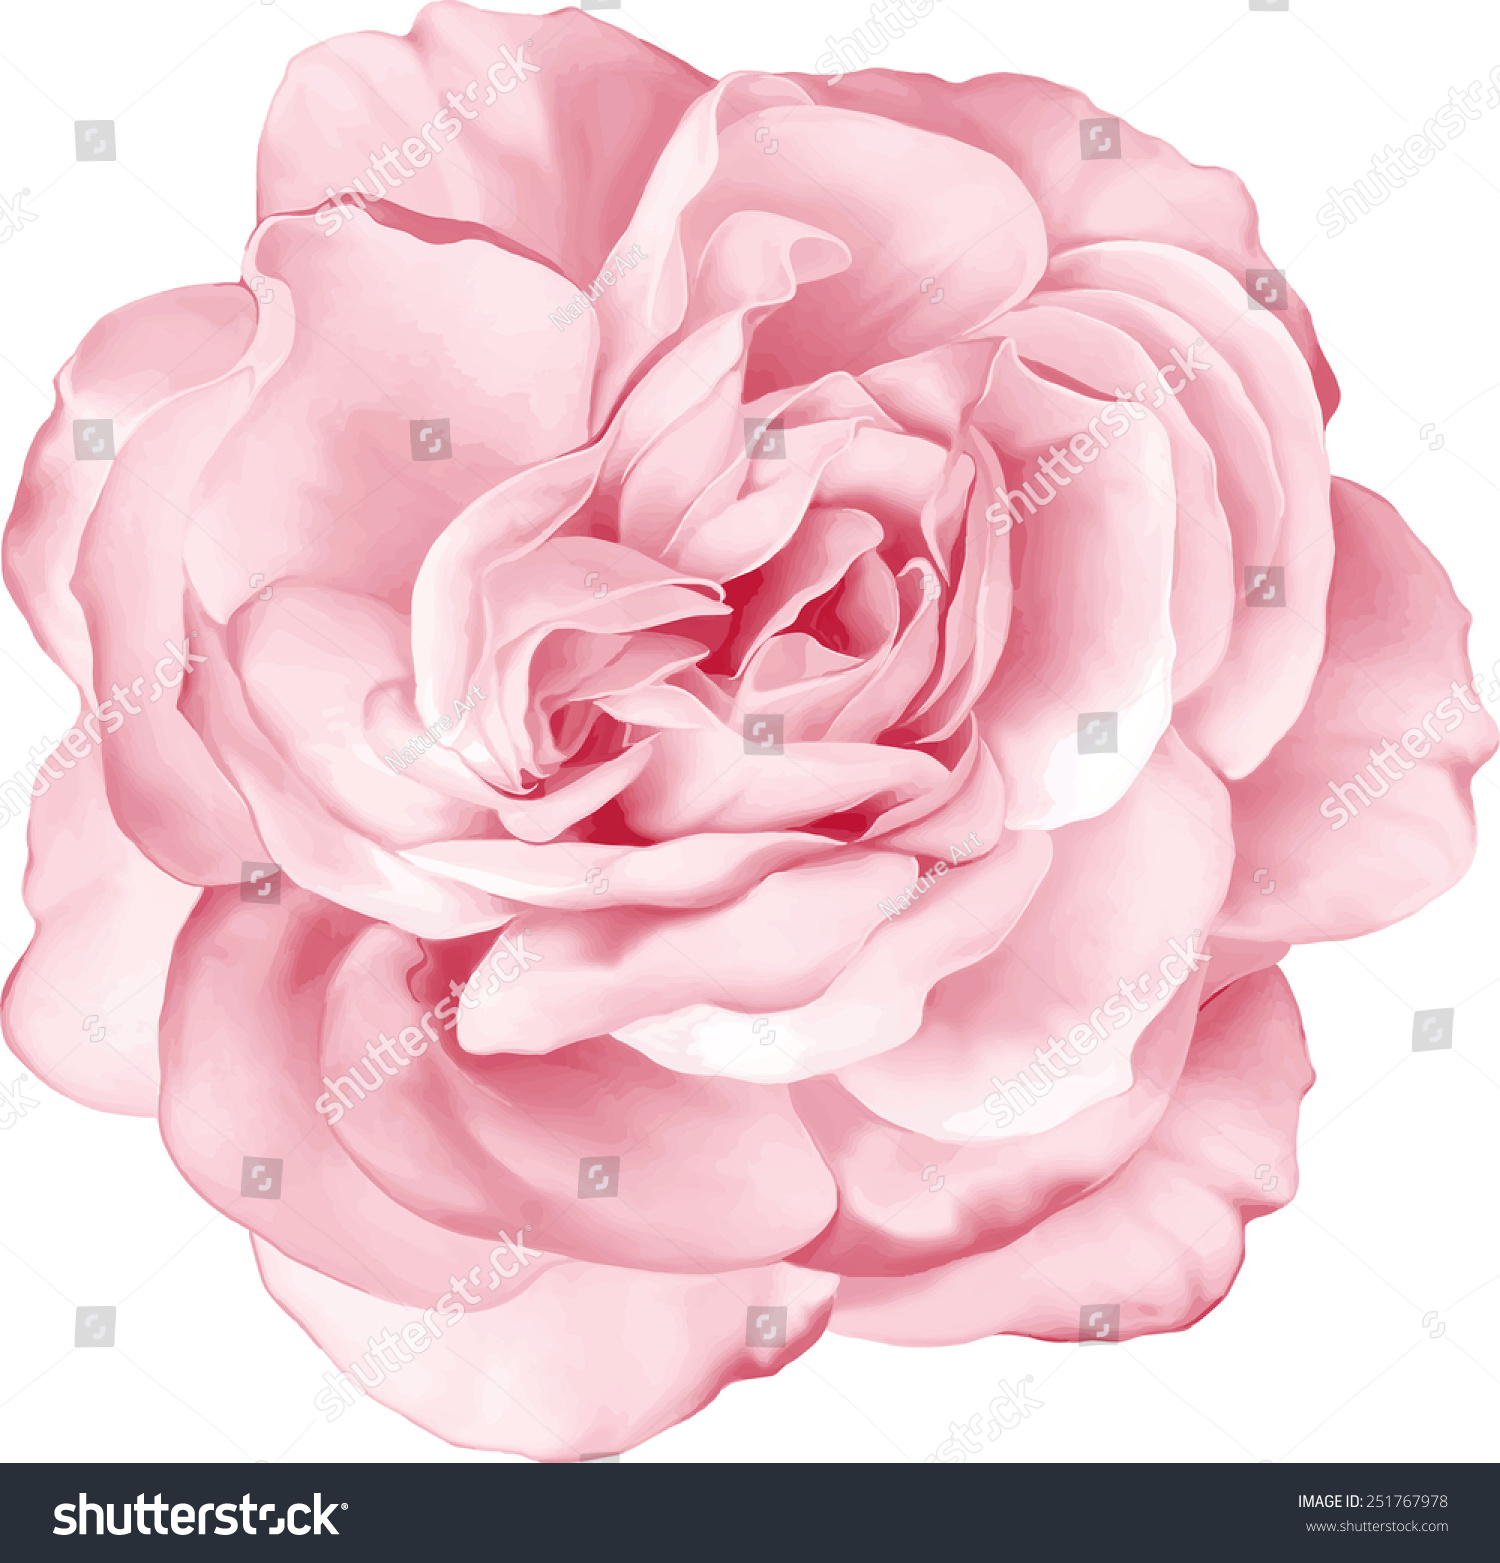 Royalty Free Beautiful Light Pink Red Rose Flower 251767978 Stock